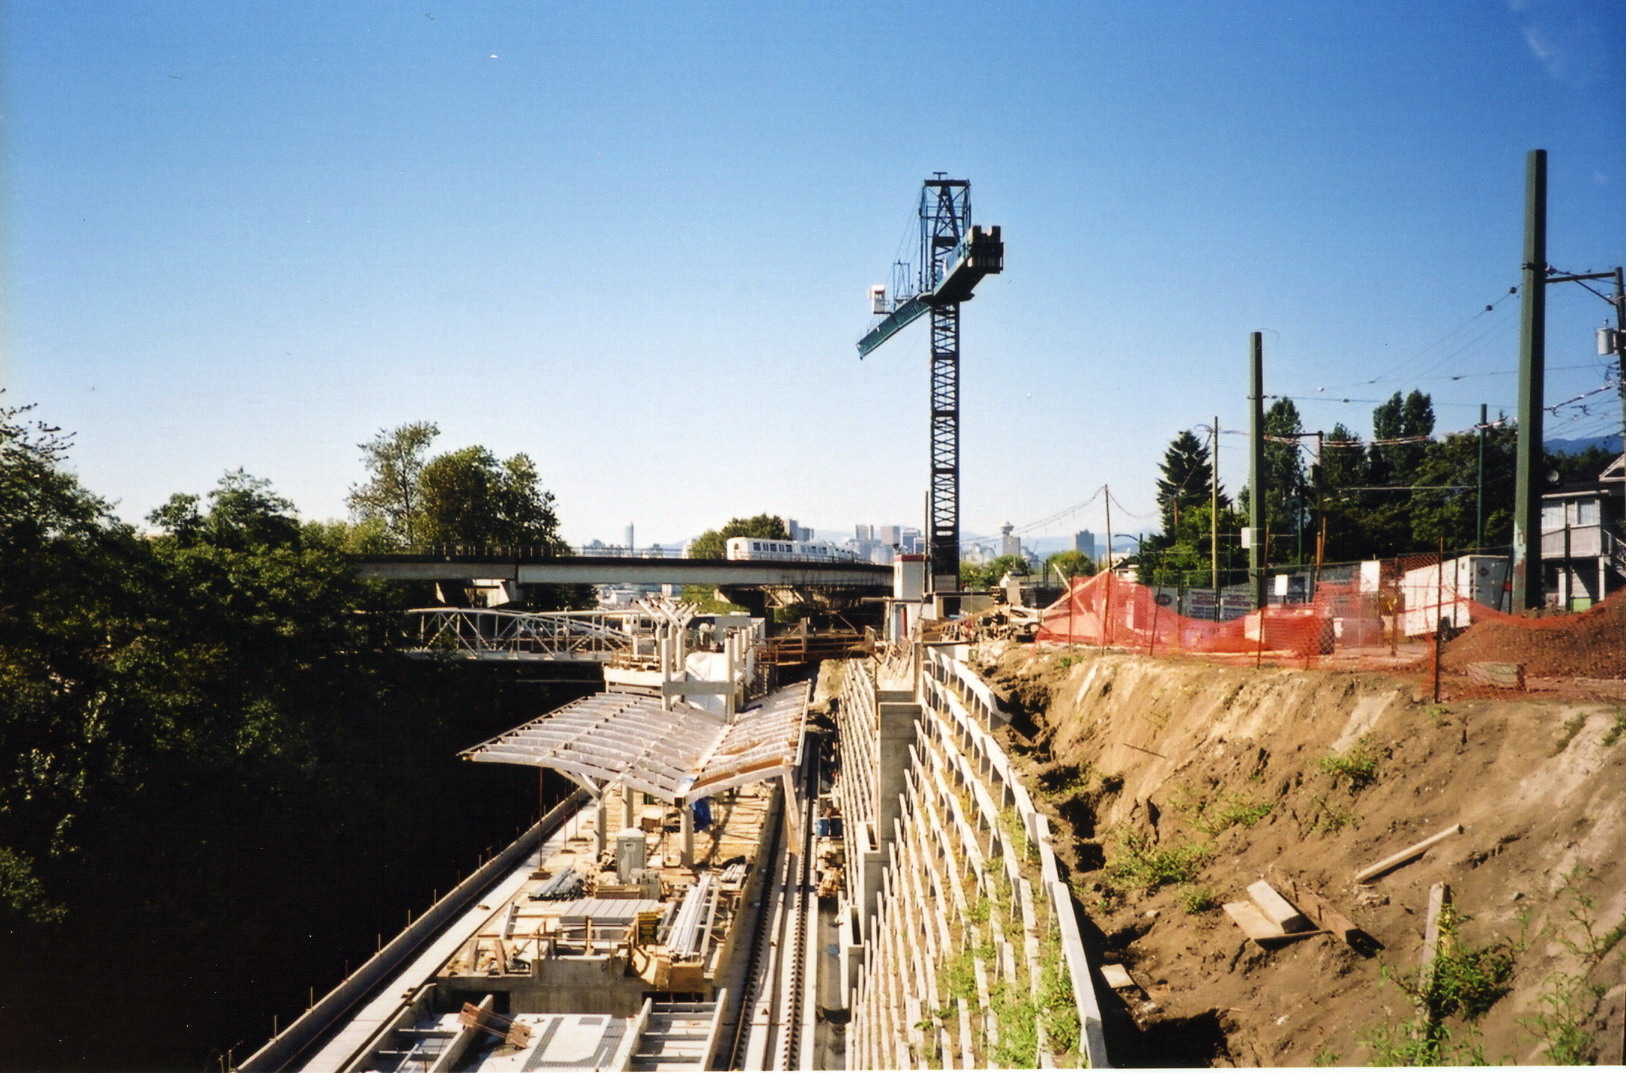 Millennium Line's Commercial Station under construction in September 2001 (Photo Credit - Mike on Flickr)